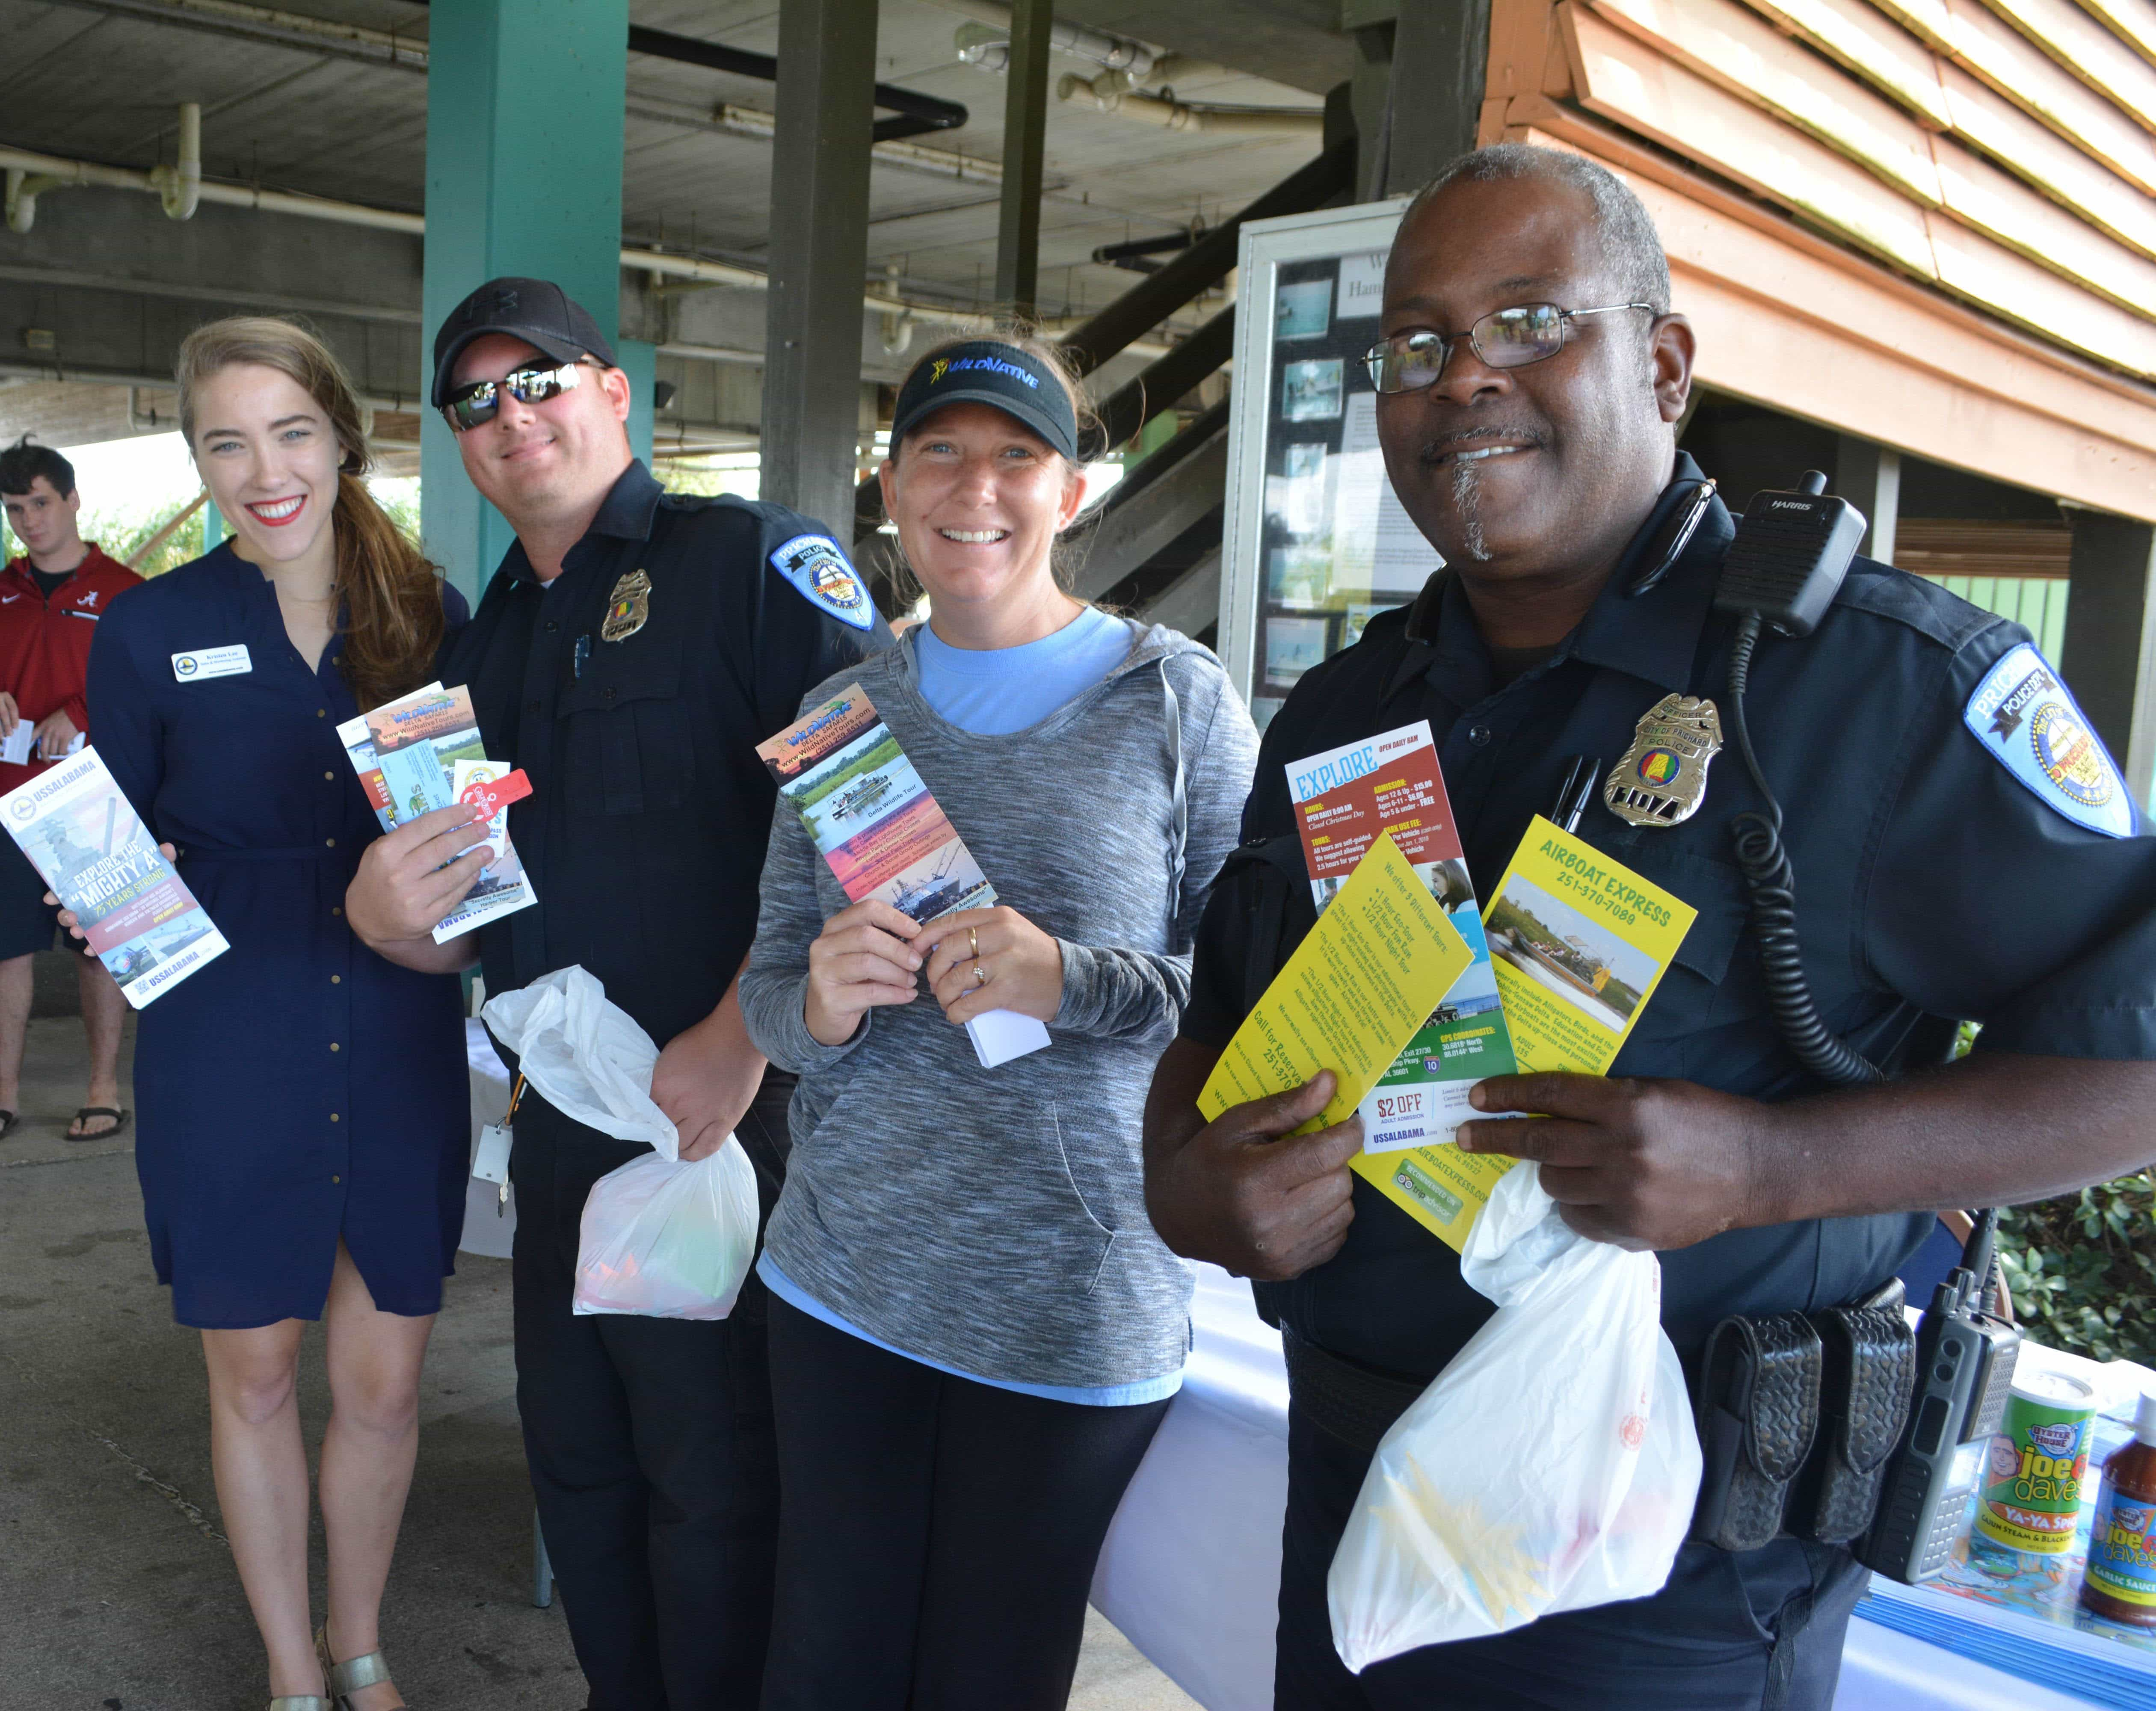 Prichard police officers stand with local vendors